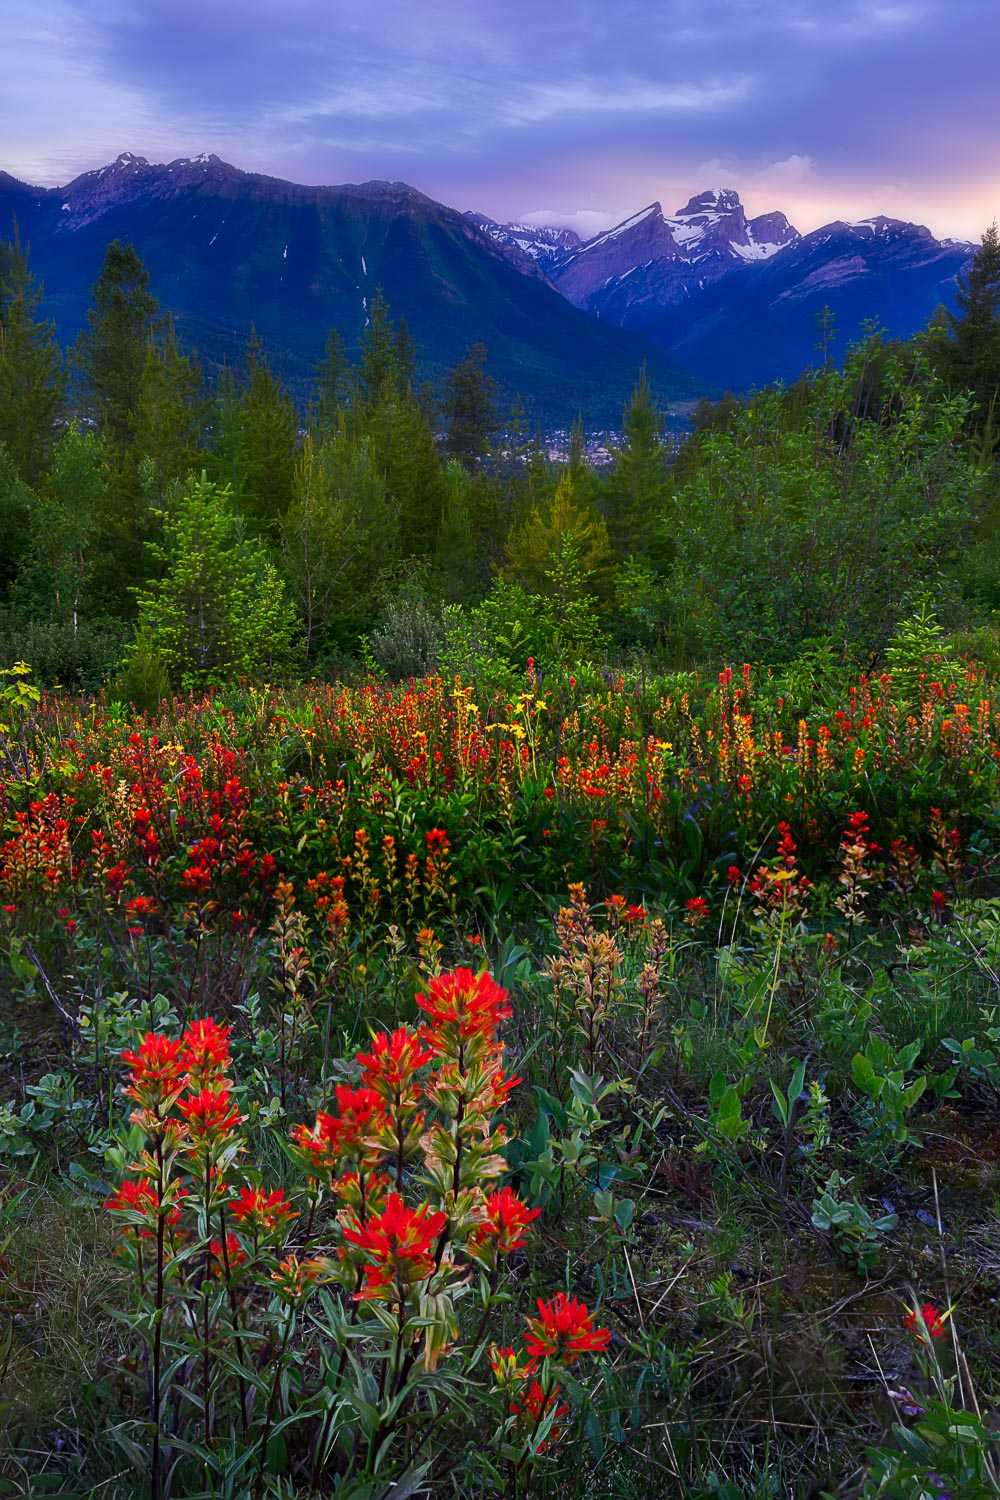 Fernie Wildflowers - Indian Paintbrush coating the meadow floor at sunrise - 15 matted and framed prints and 10 canvas prints available